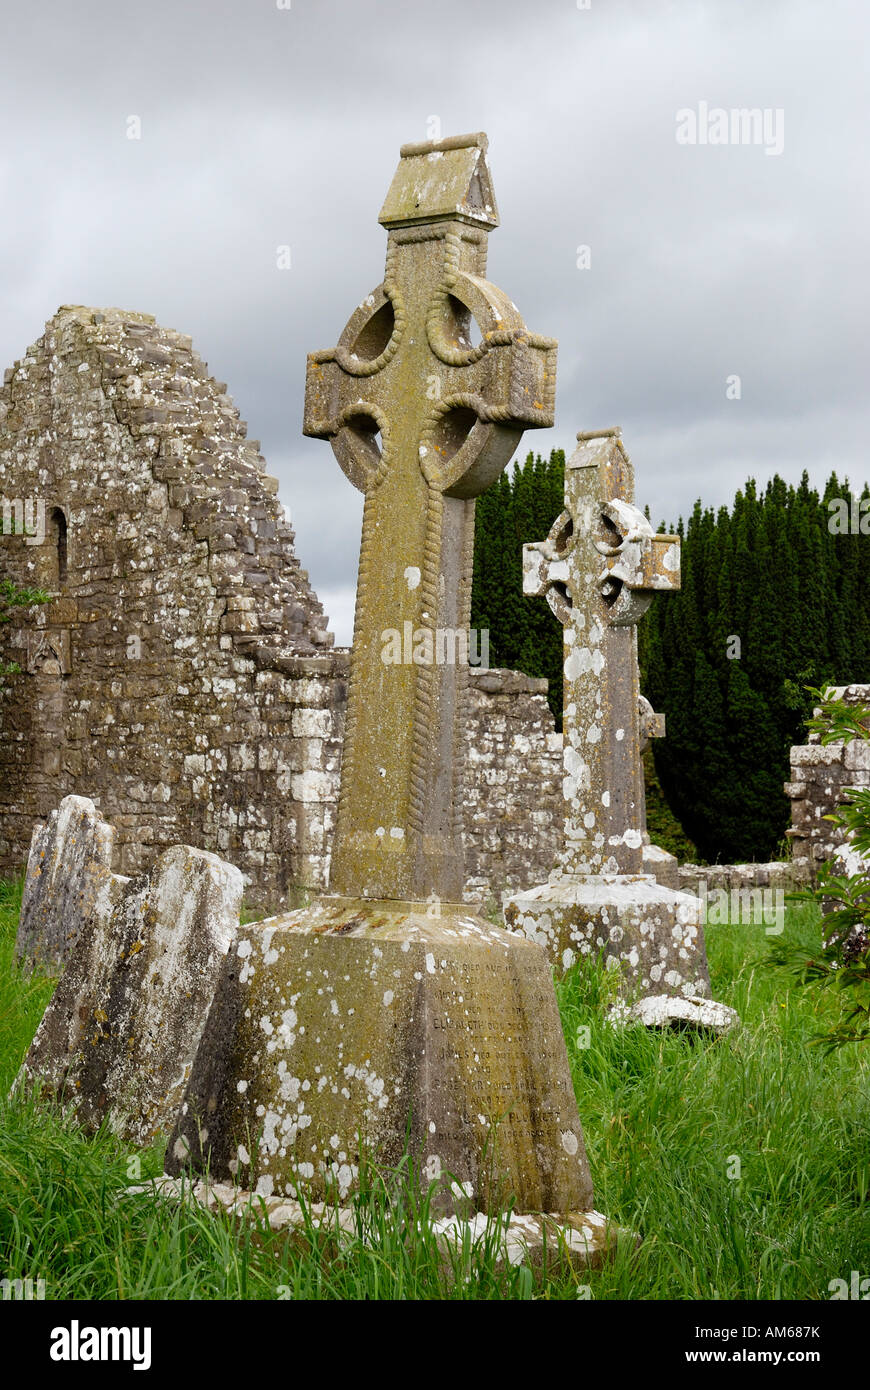 Inclined celtic style highcrosses mounted on remains of old monastary near Slim Co Meath Ireland Stock Photo